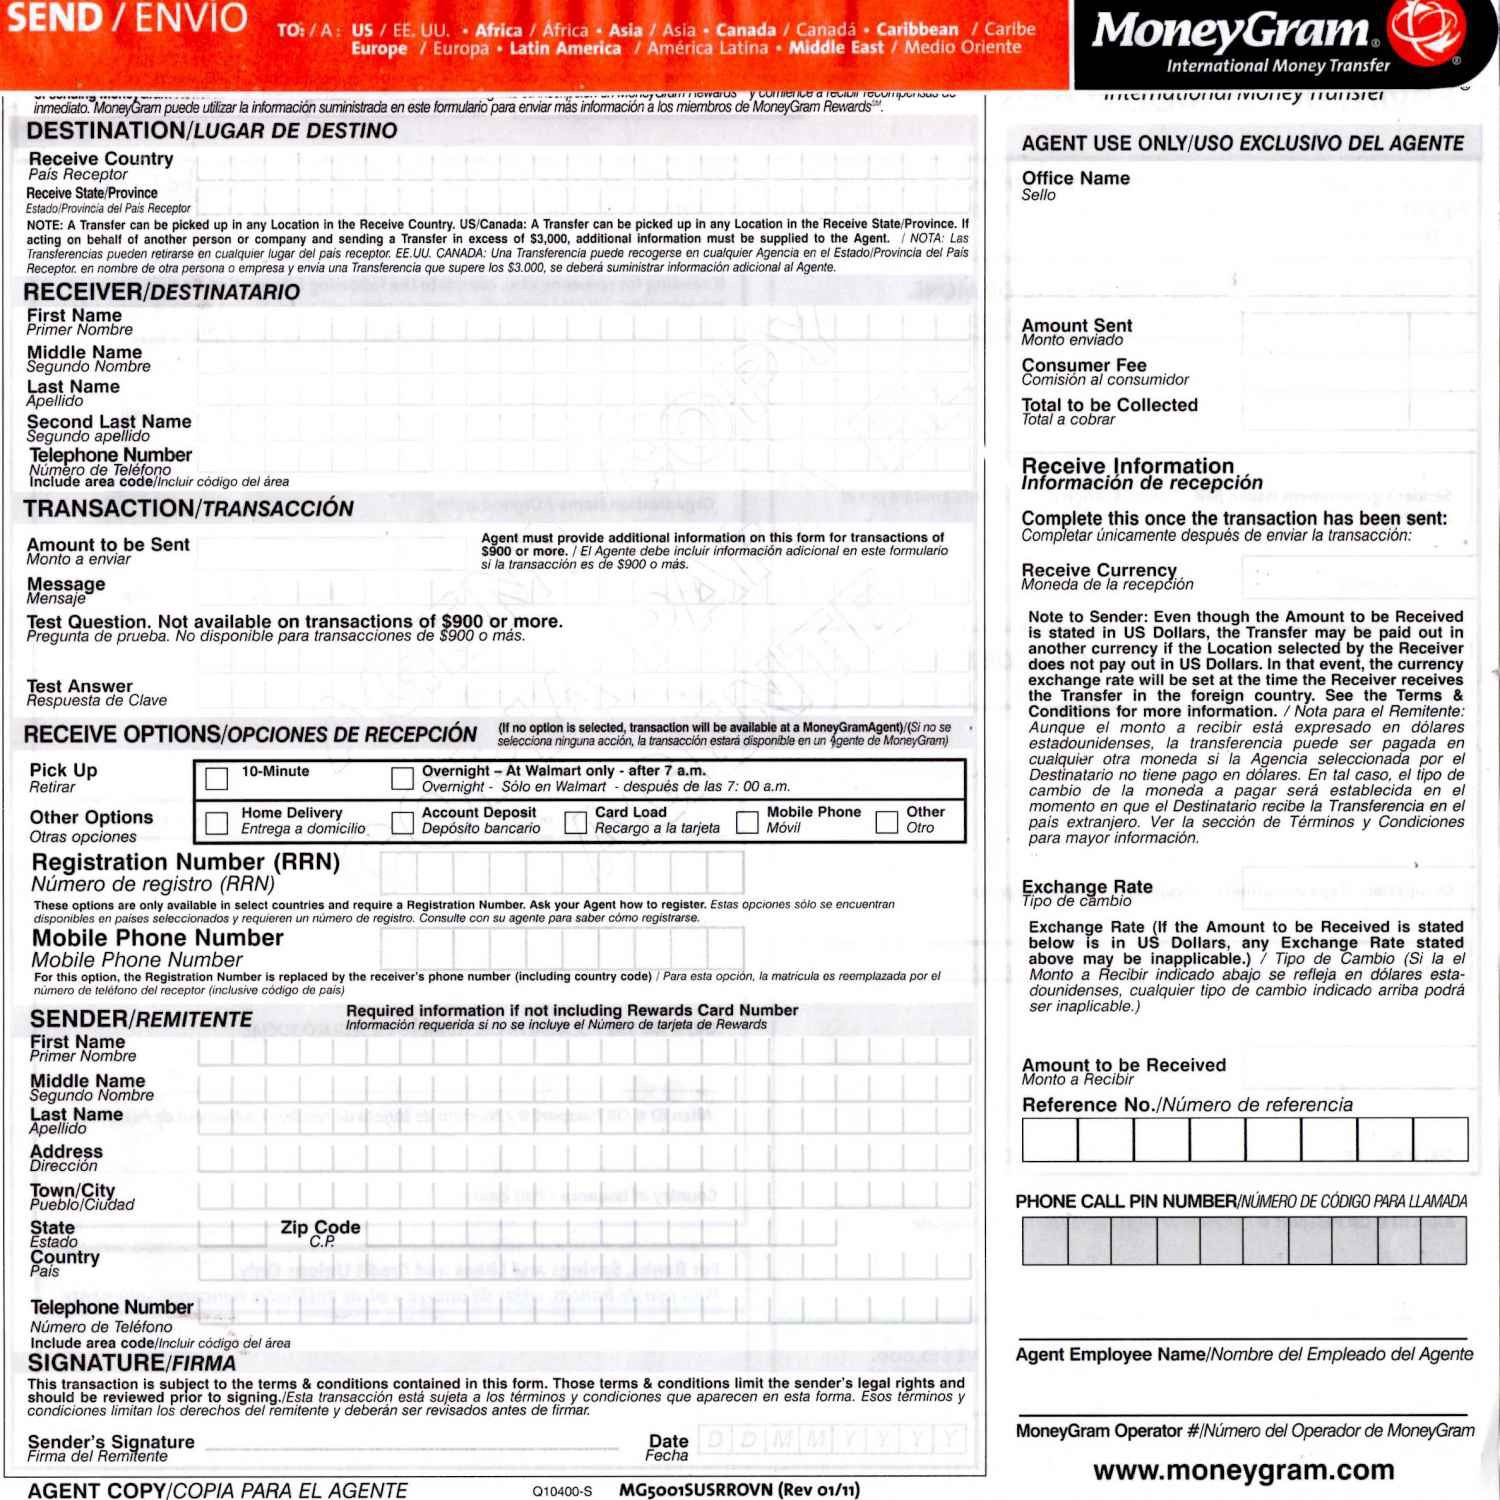 Example Of Moneygram S Money Order Form